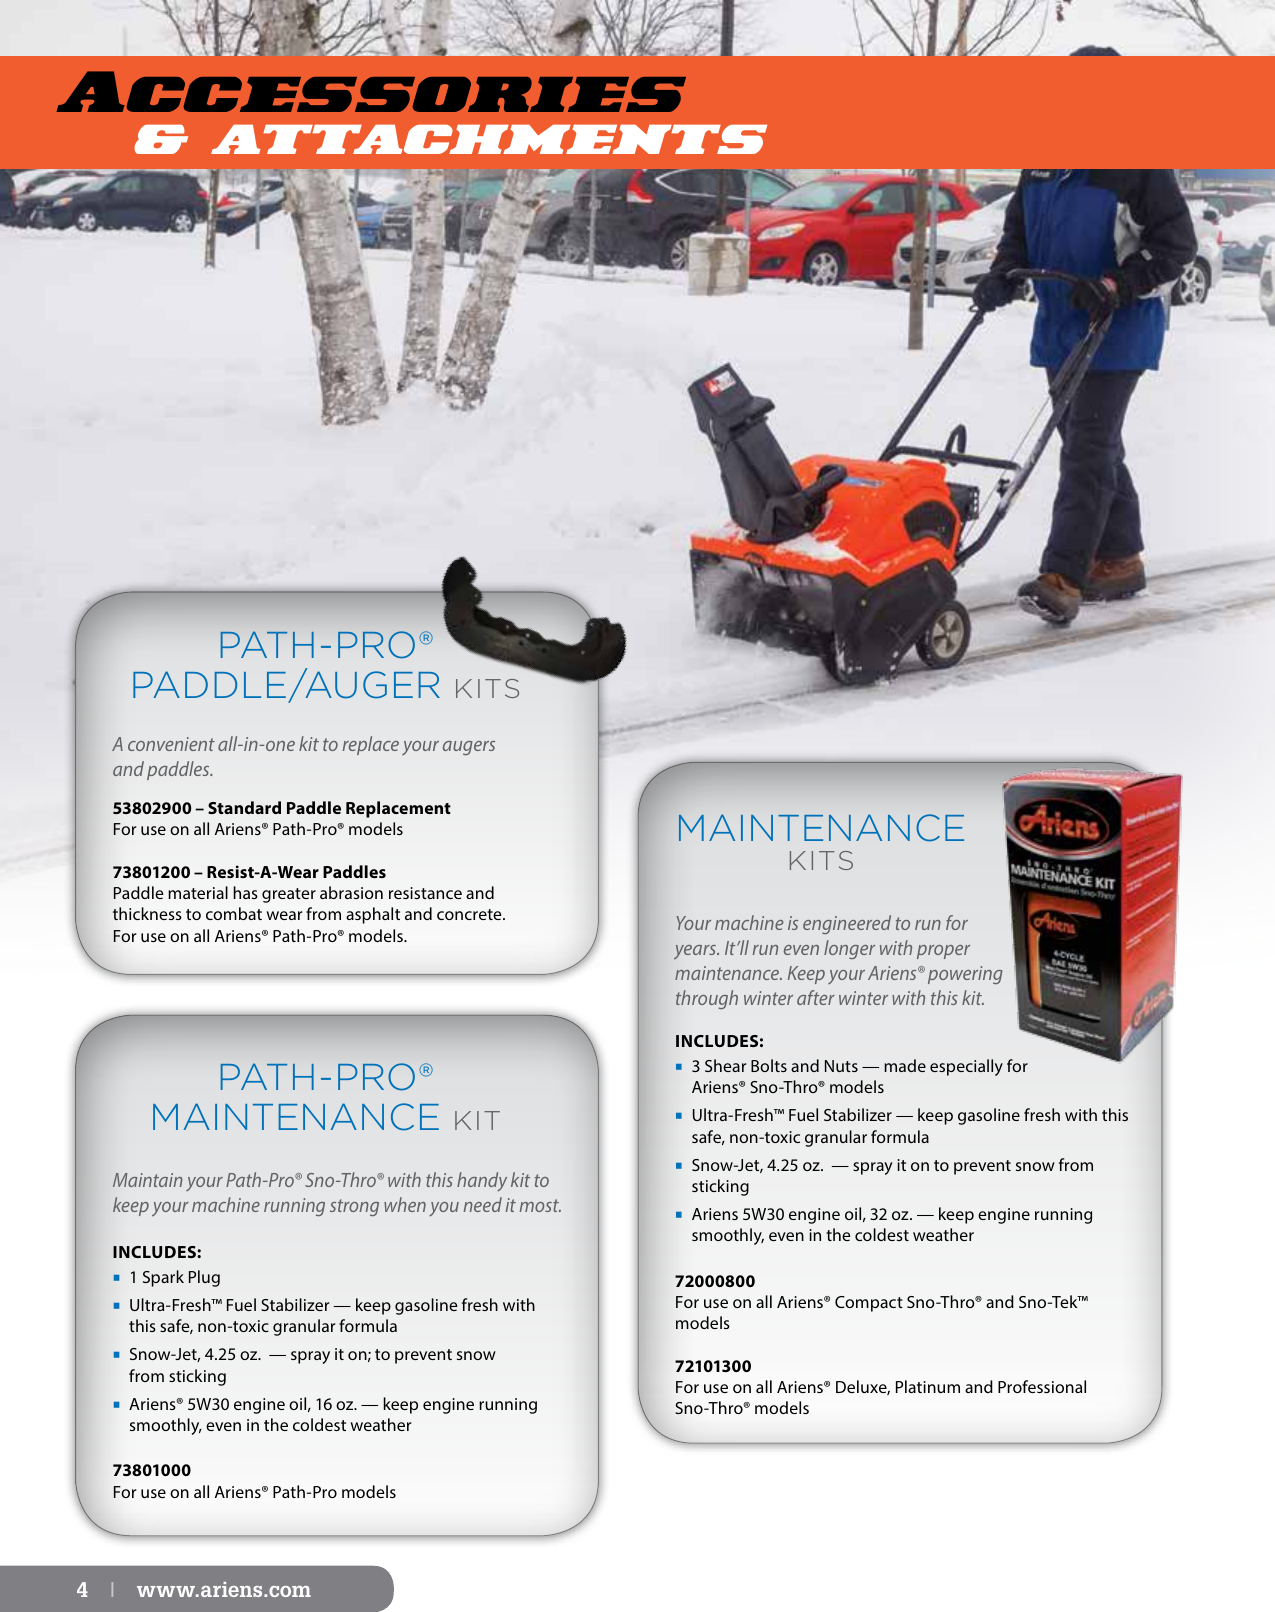 Ariens Power Brushes Parts And Accessories Guide